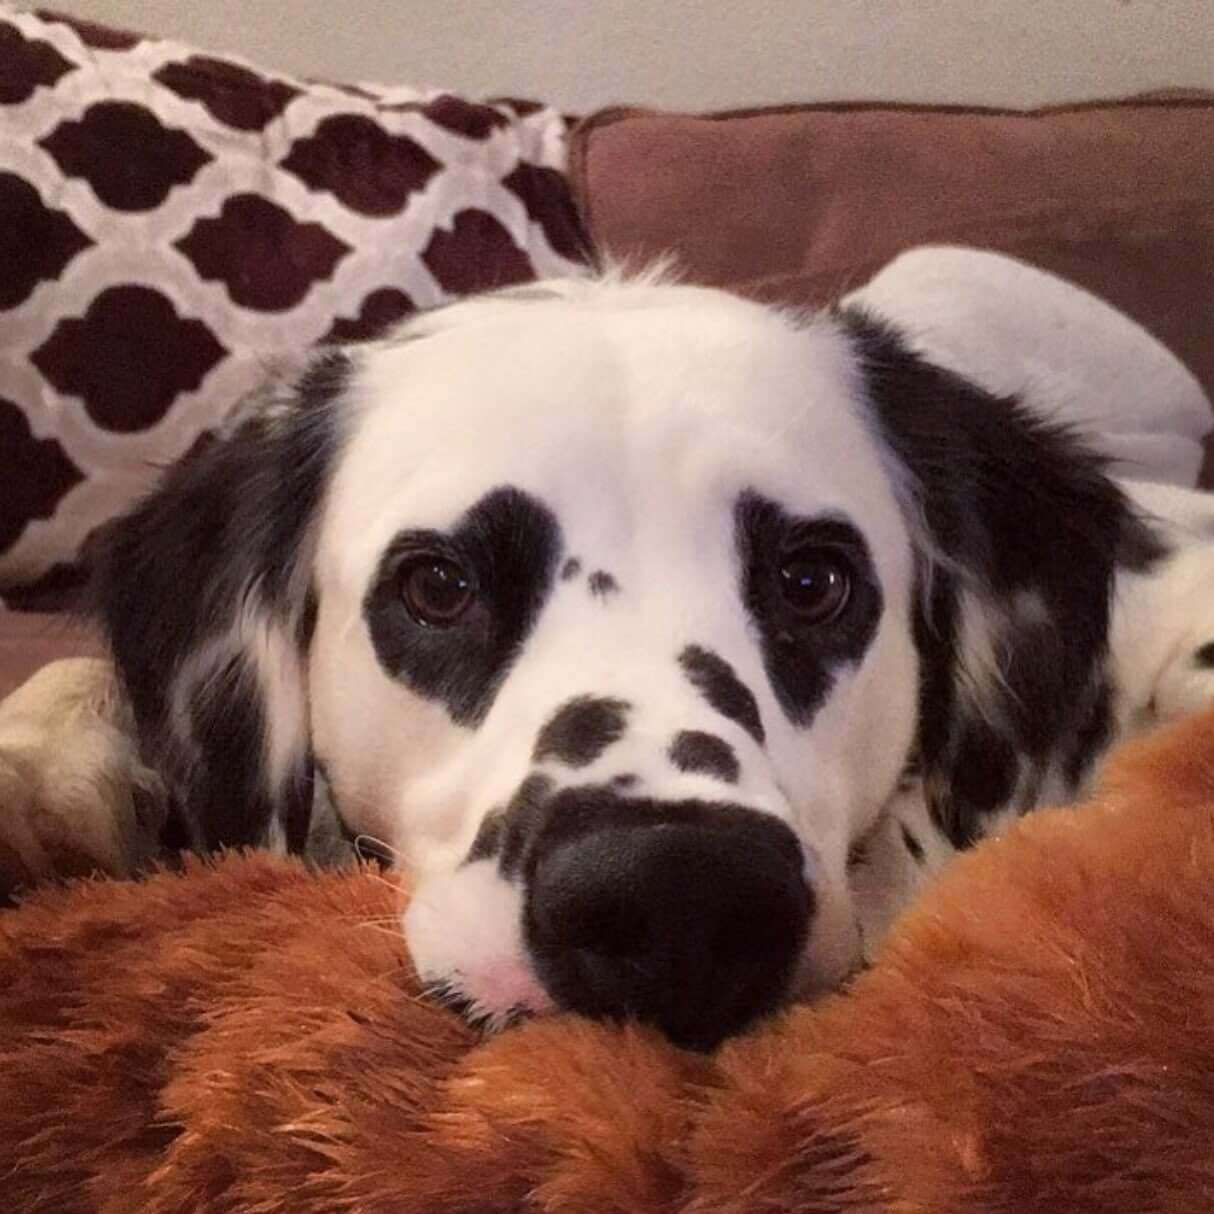 charlie the dalmatian heart shaped eyes 1 (1)